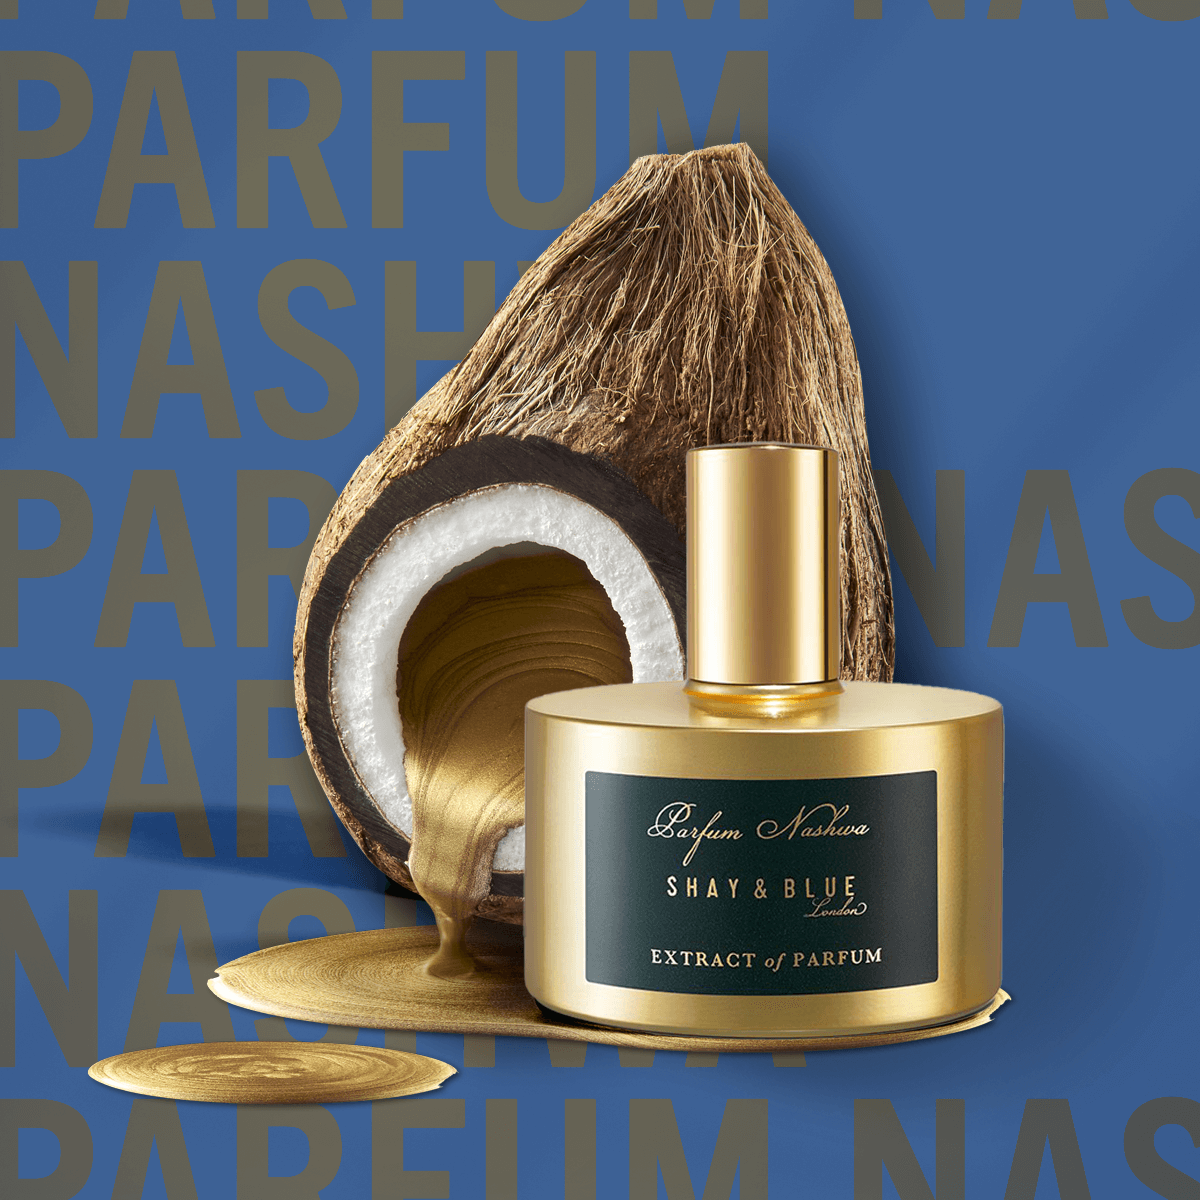 Parfum Nashwa Extract of Parfum 60ml | Rich notes of cacao noir and coconut melt over dark oud wood. | Clean All Gender Fragrance | Shay & Blue